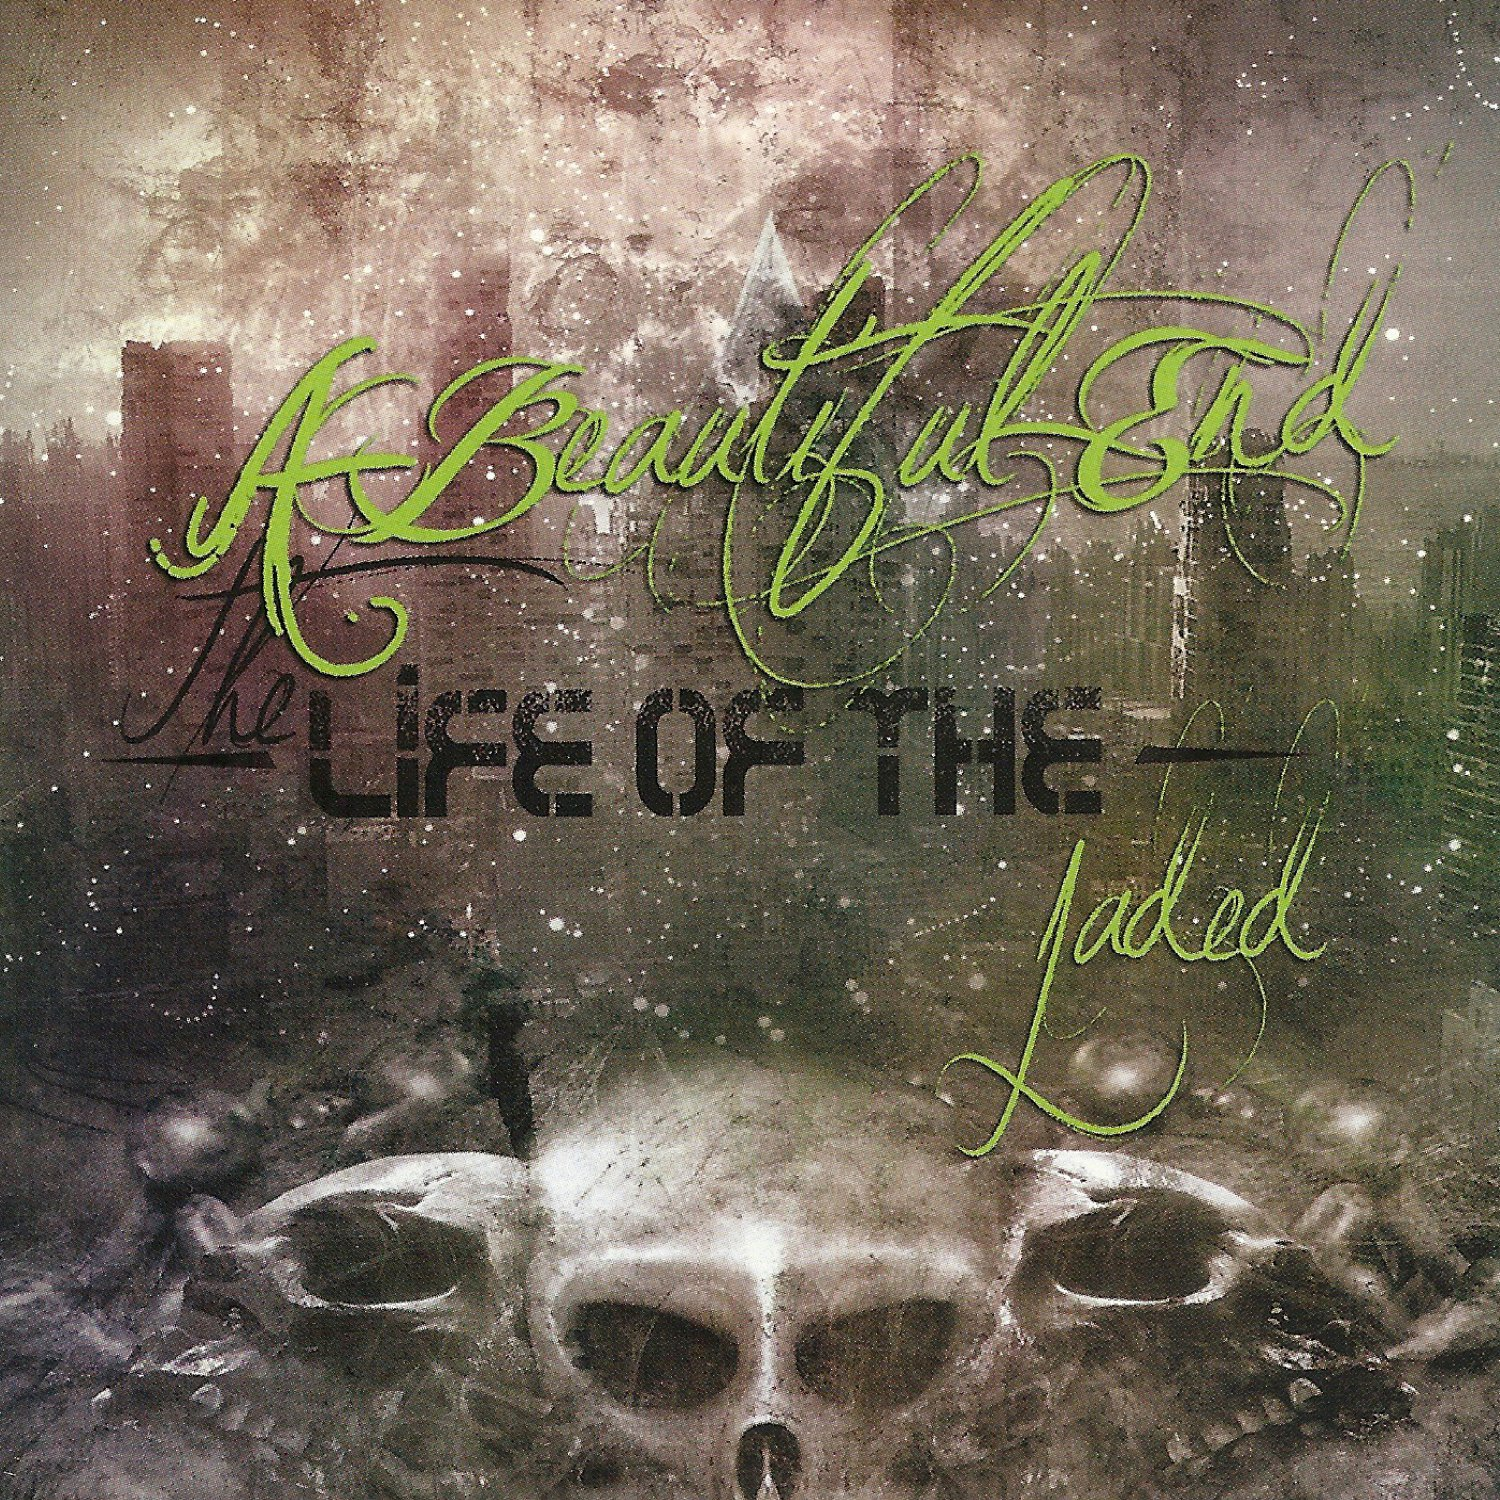 The Life Of The Jaded by A Beautiful End